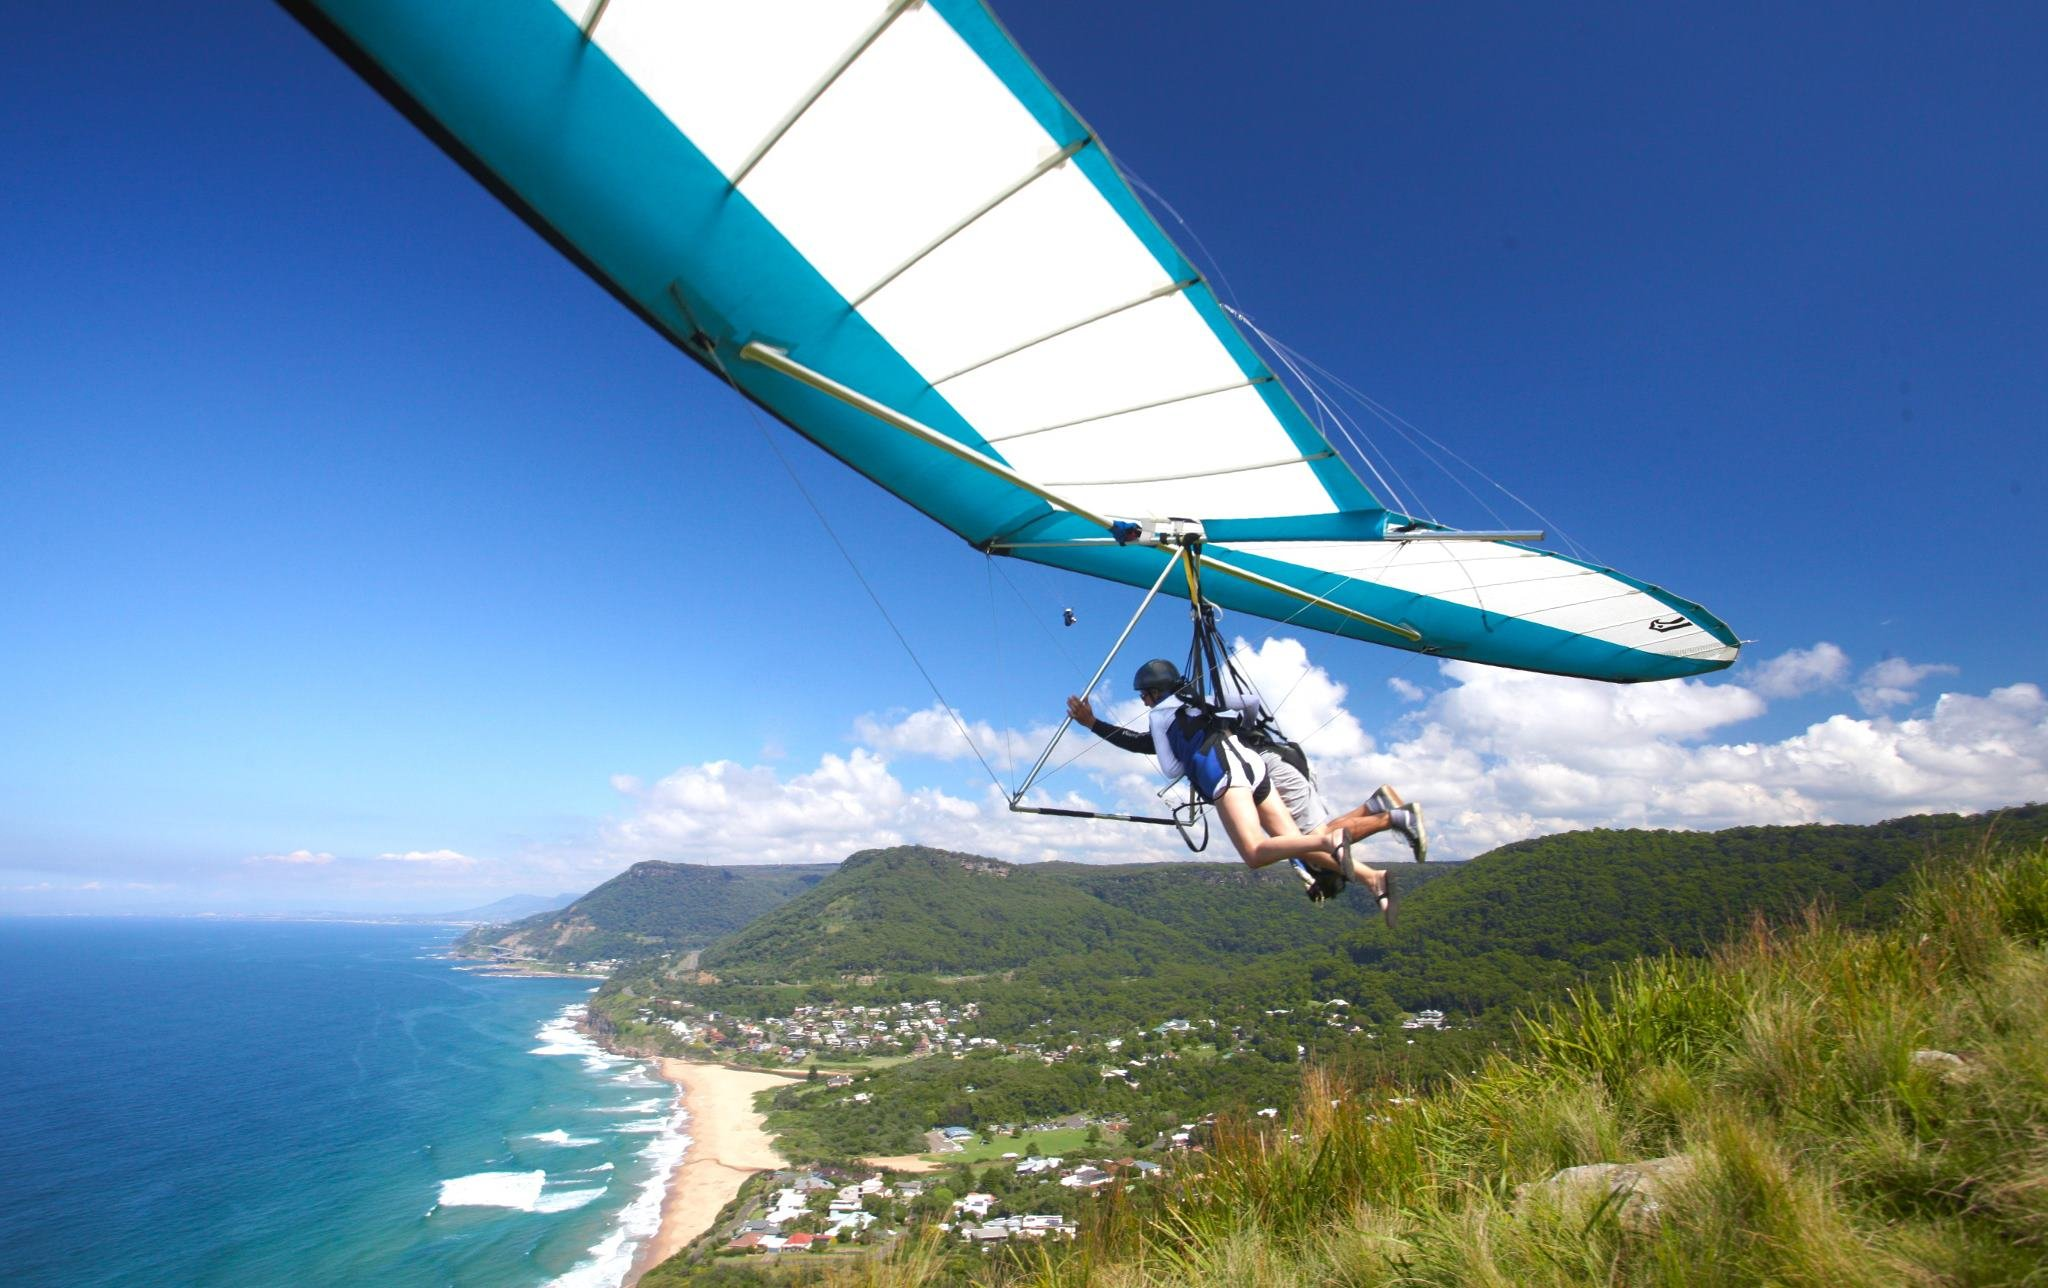 2048x1288 - Hang Gliding Wallpapers 14